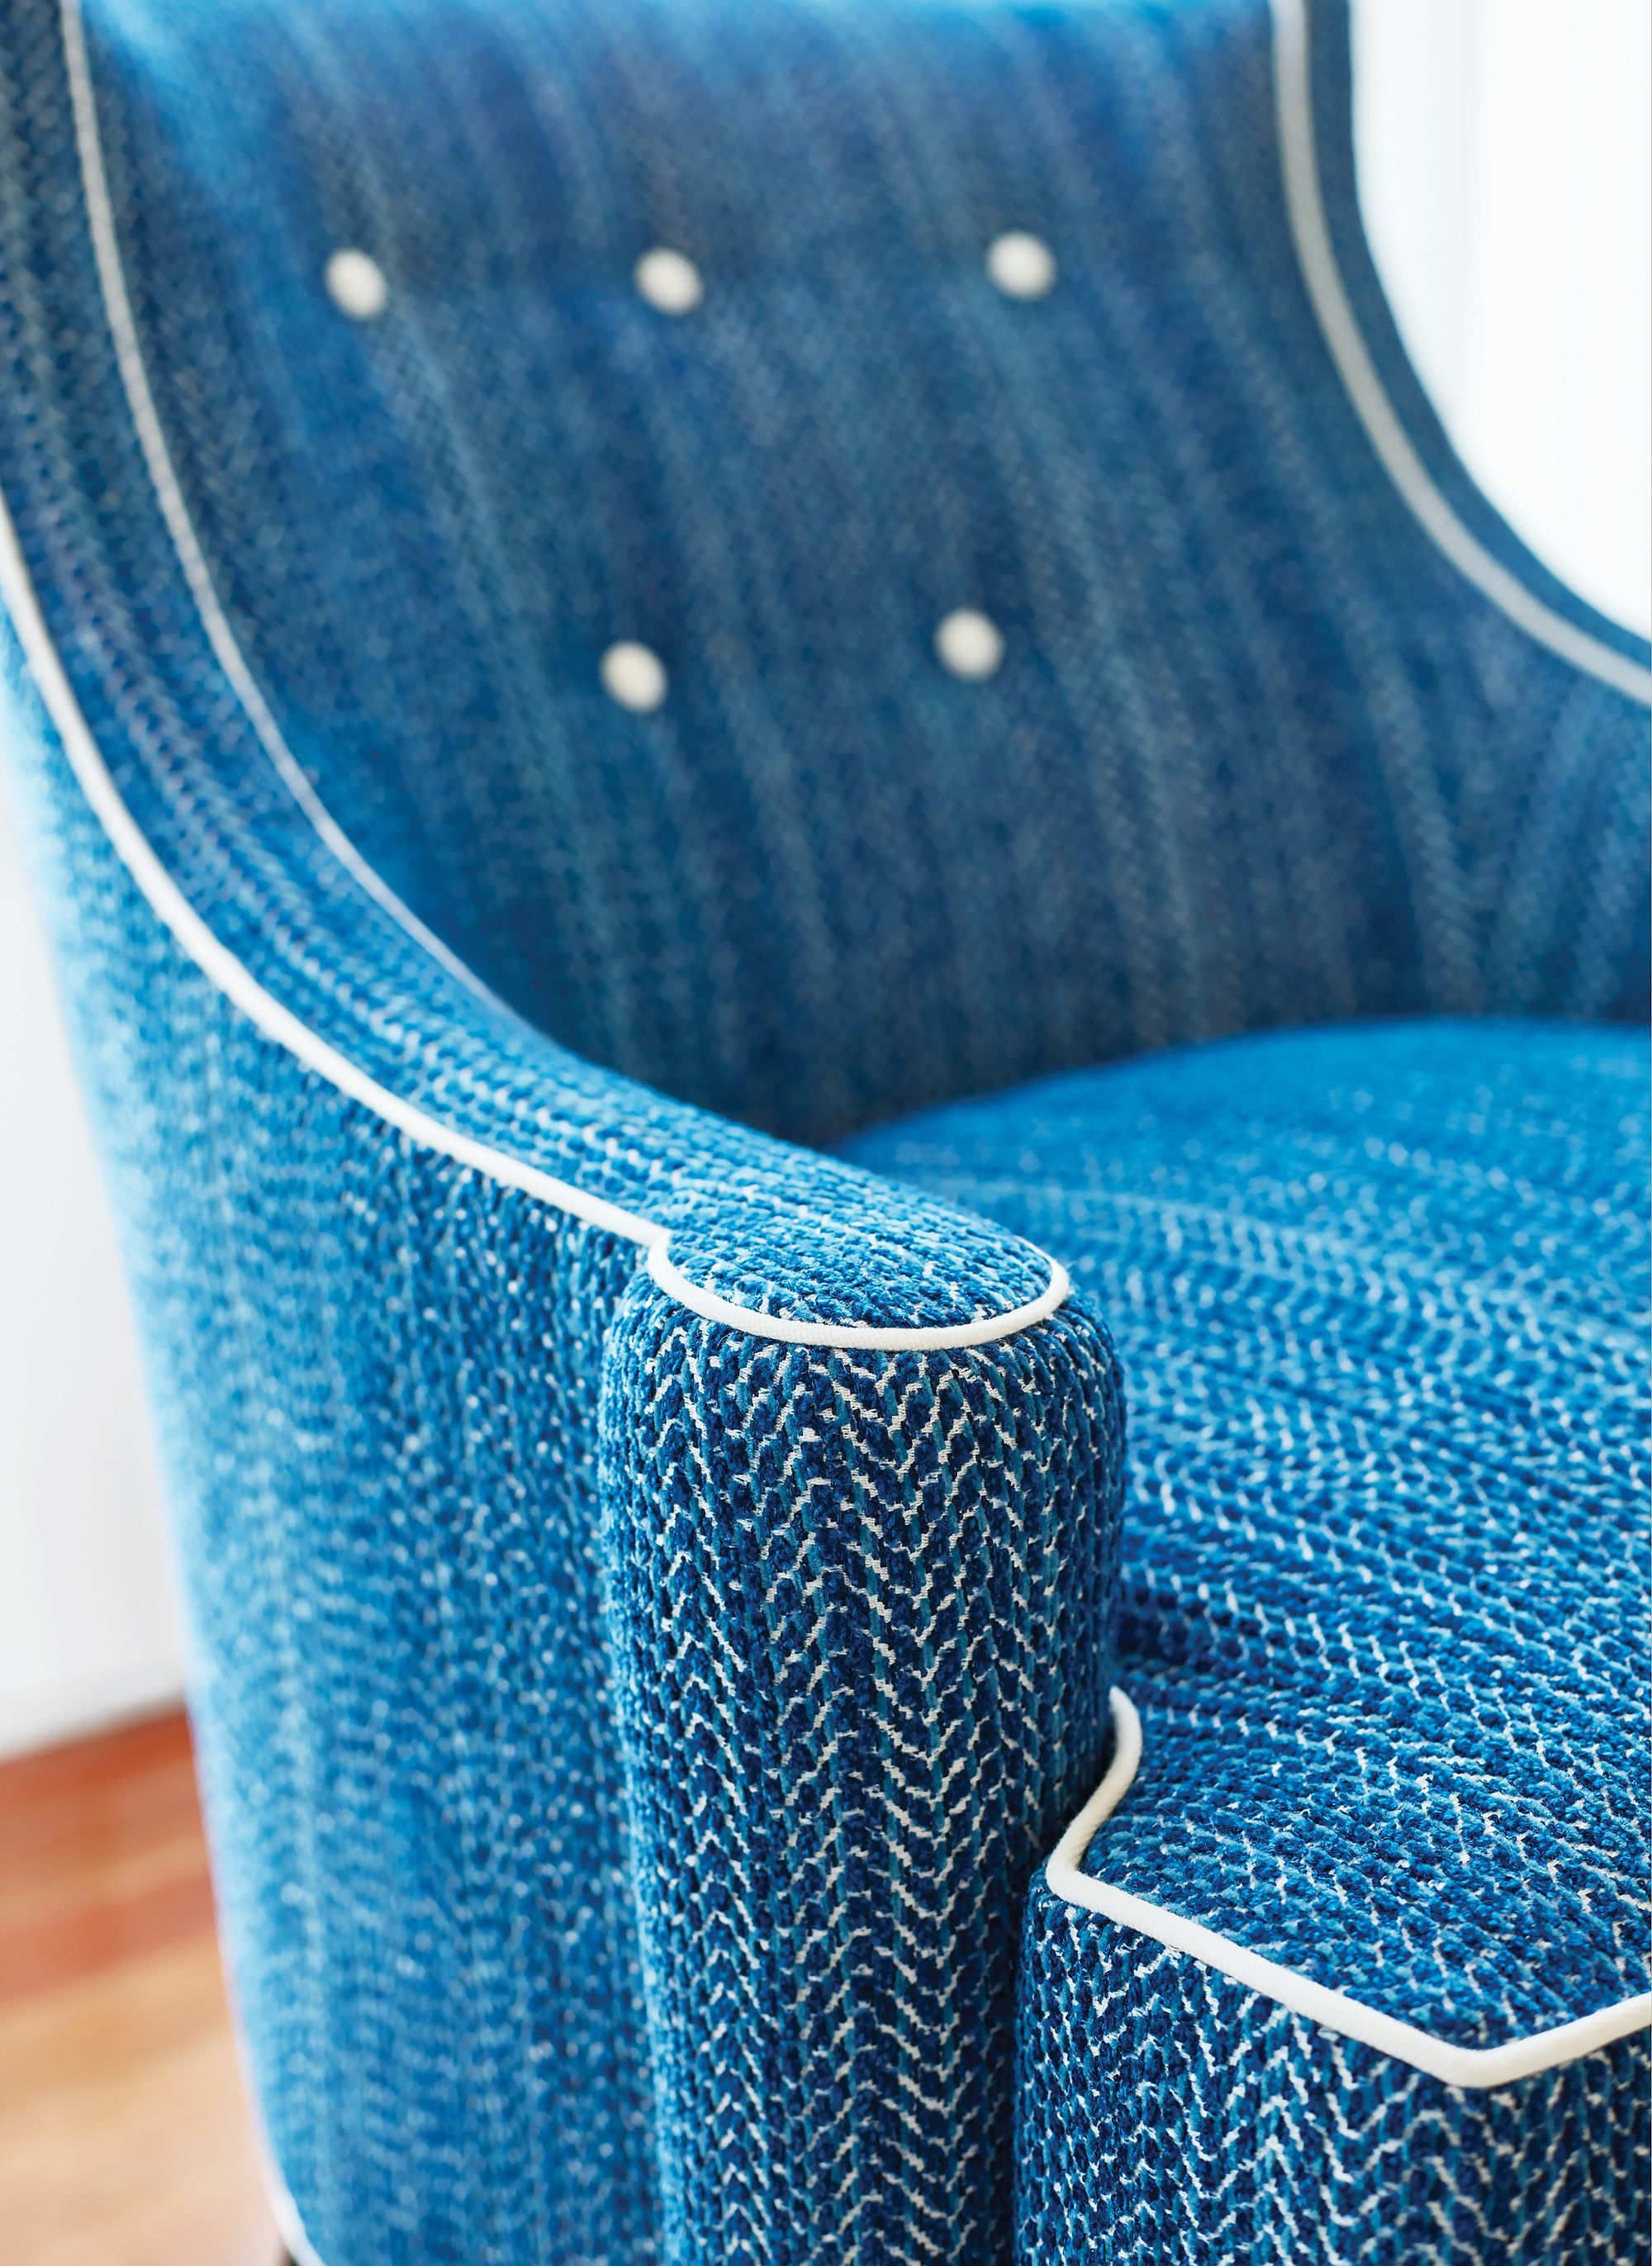 Emerson Chair from Thibaut Fine Furniture in Catalina indoor